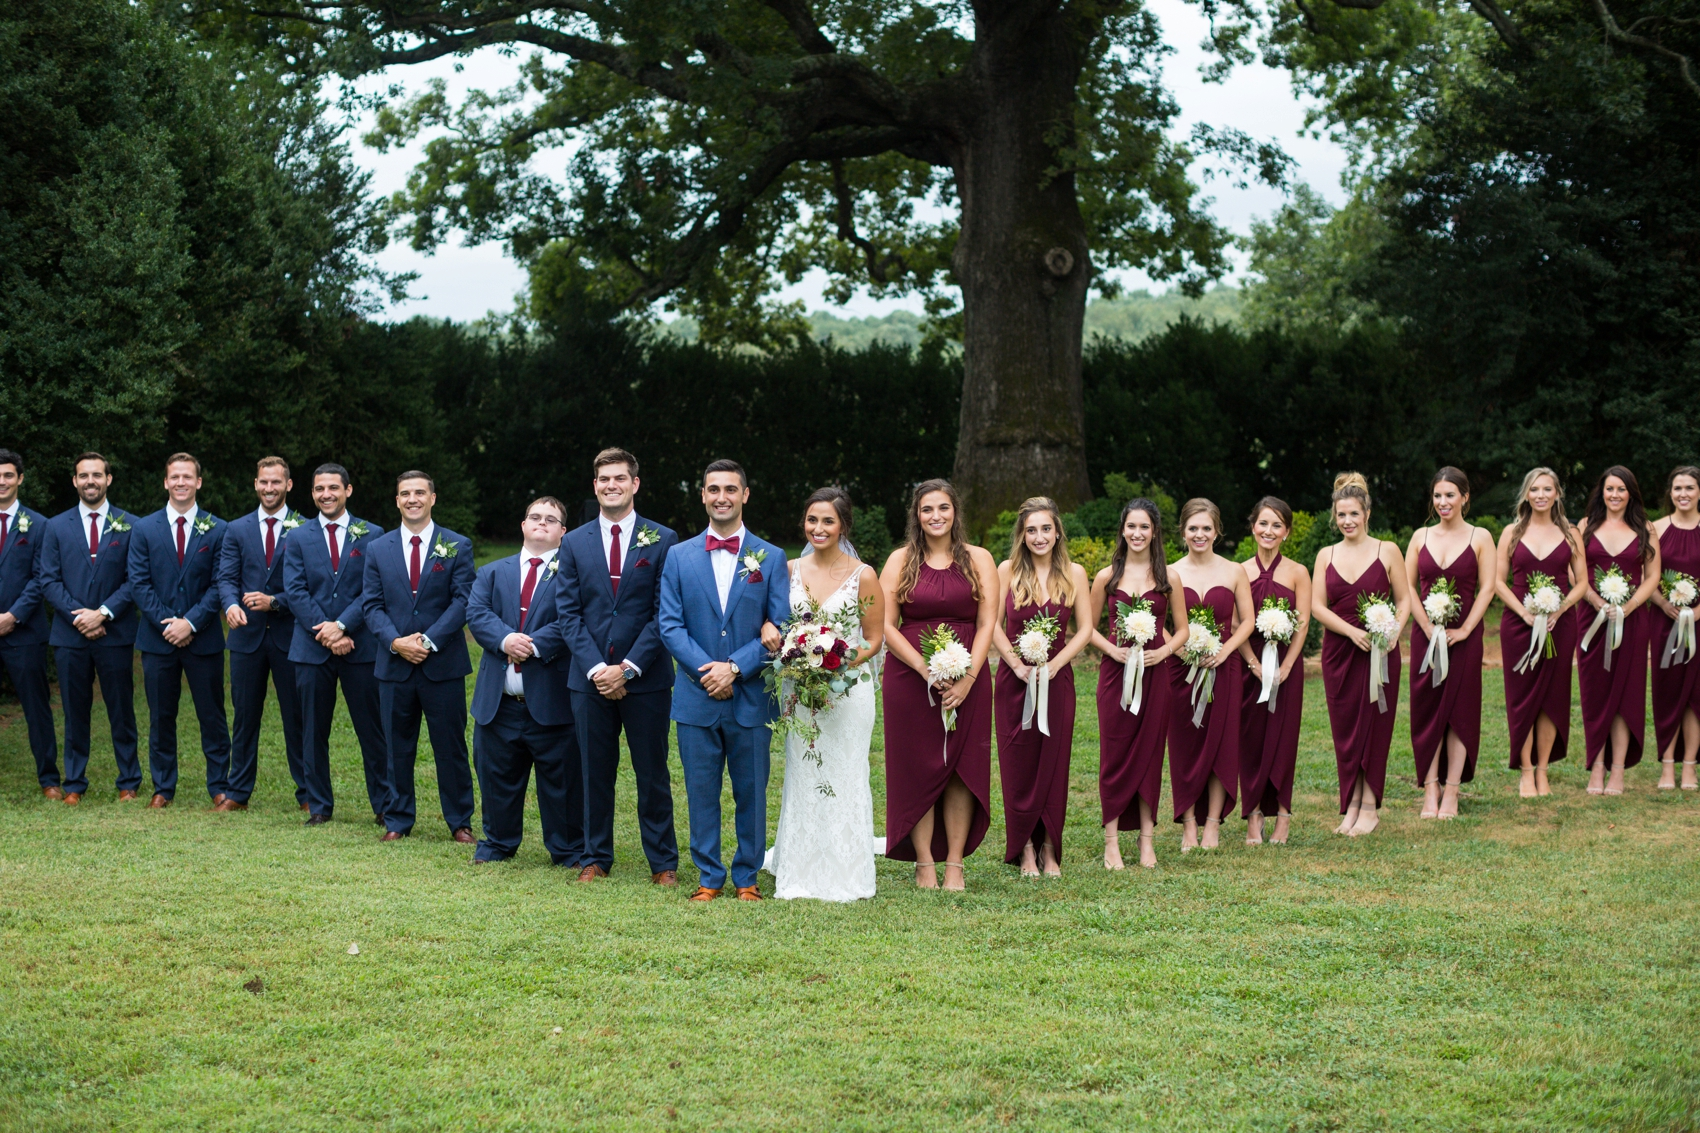 Ashlawn-Highland-Virginia-Wedding-2018-0357.jpg